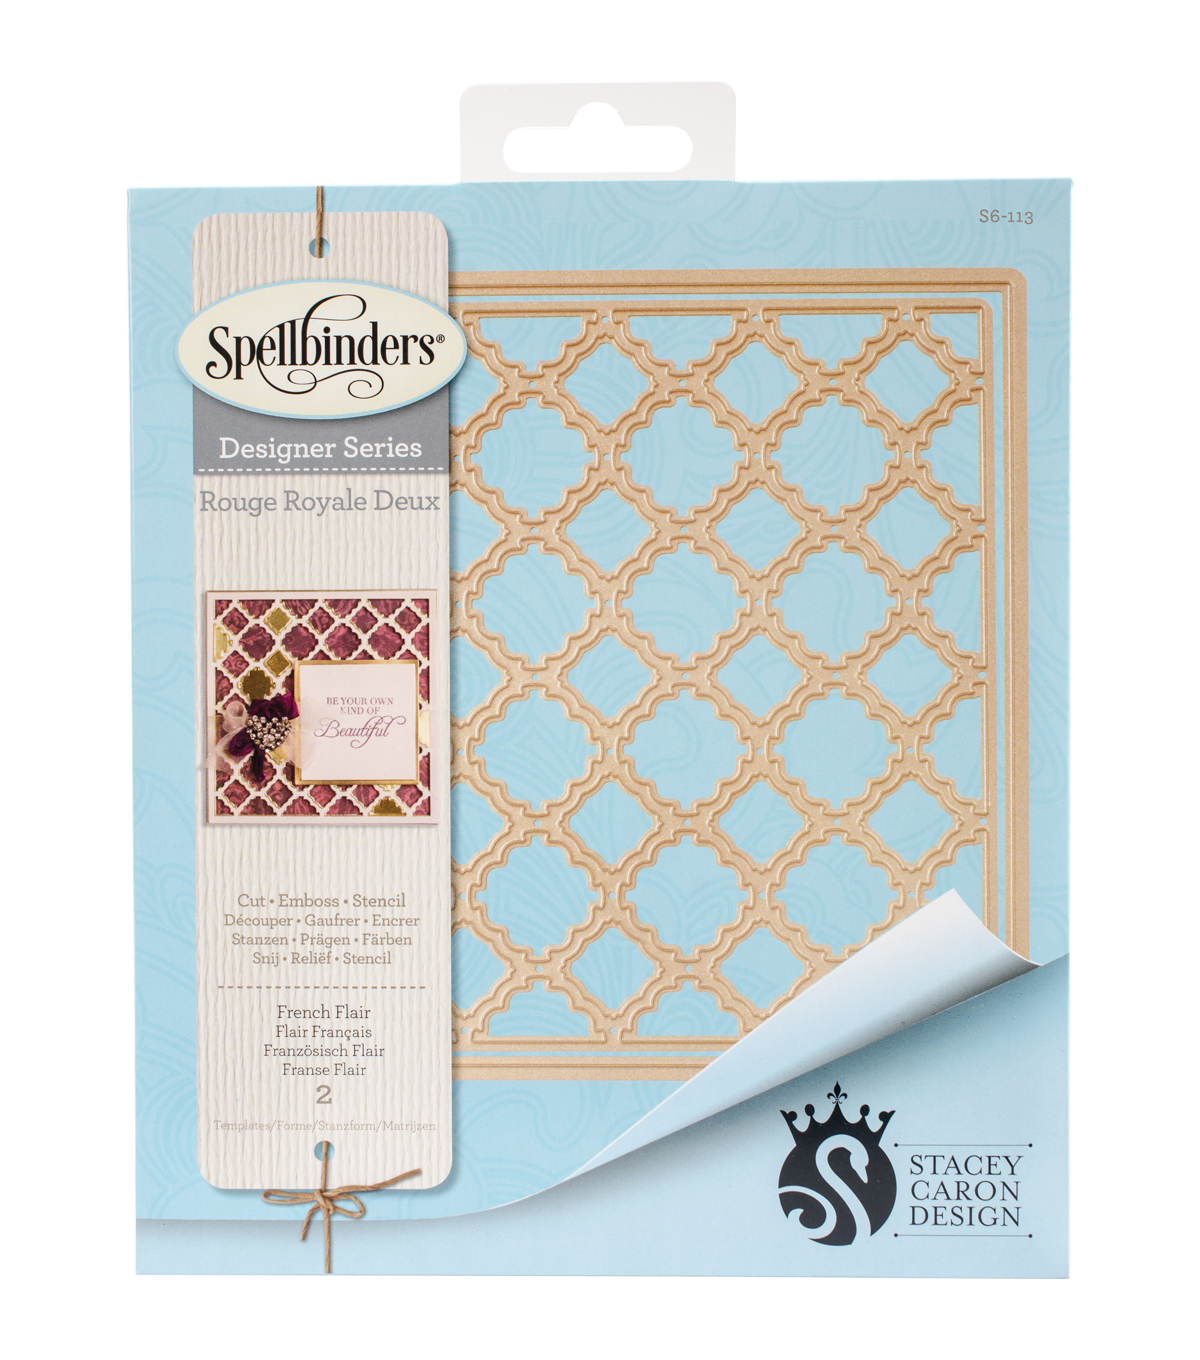 Spellbinders Card Creator Stacey Caron Etched Die-French Flair